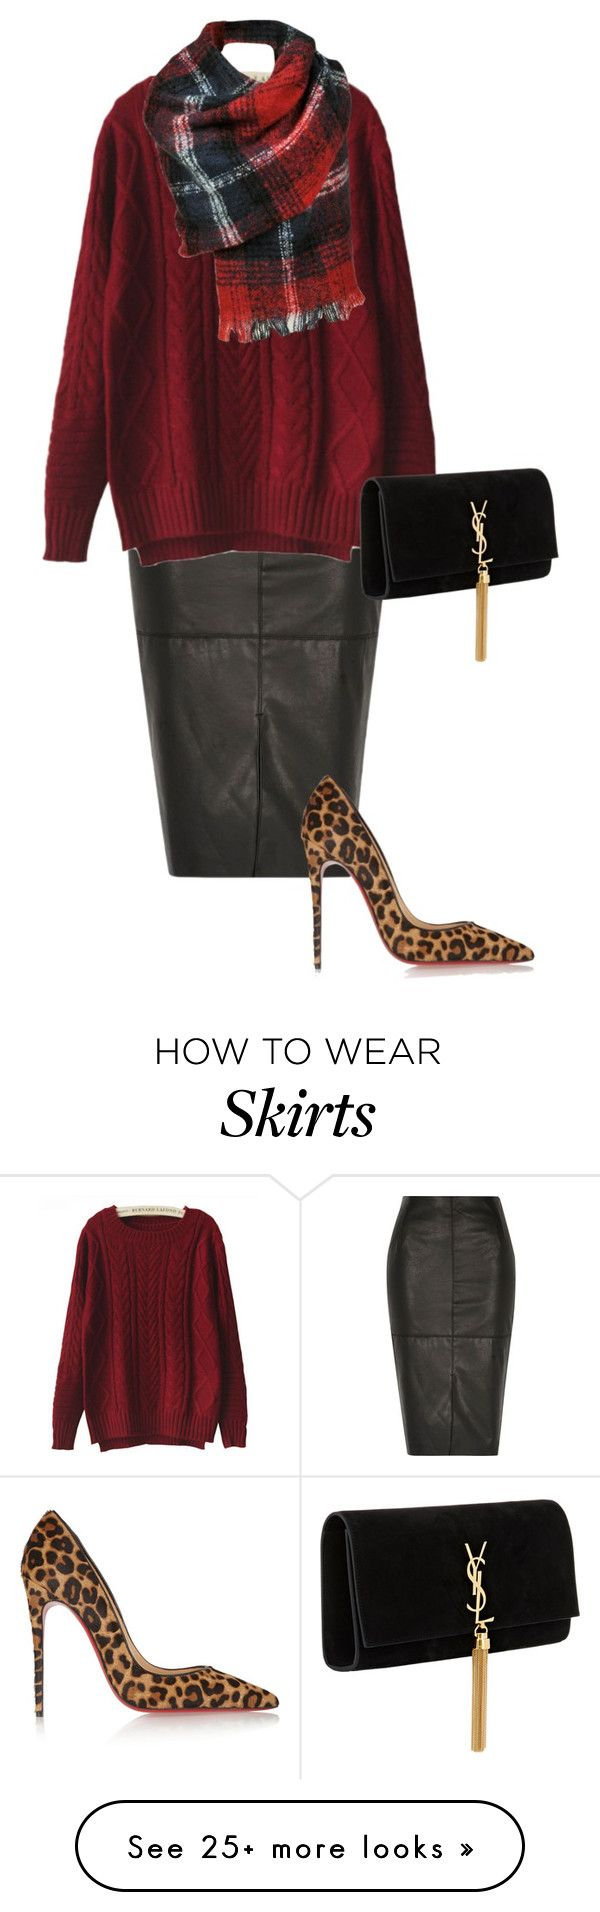 """leather skirt"" by part-time-fashionista on Polyvore featuring River Island, Chicnova Fashion, Christian Louboutin, Black Rivet and Yves Saint Laurent"